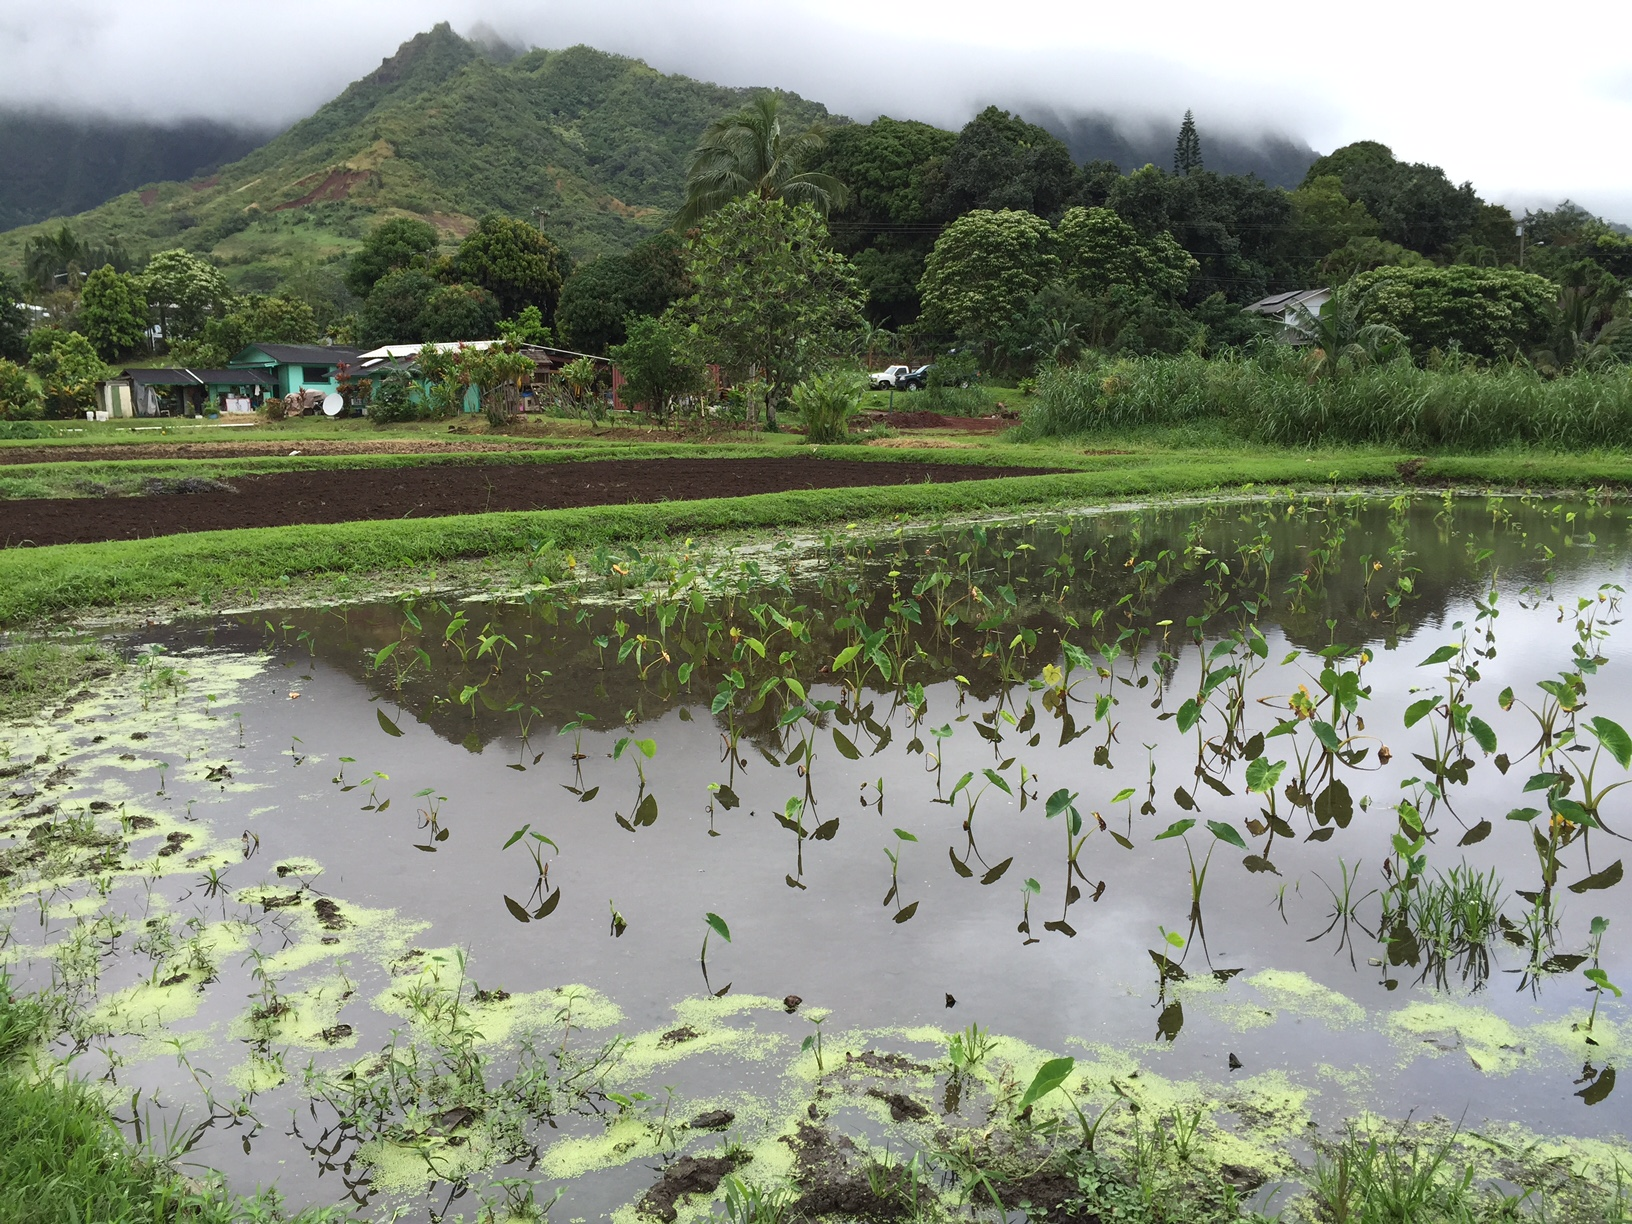 View of loʻi made up of young kalo and green algae growing on the outter ridge with mountain in backdrop with clouds sitting on top.